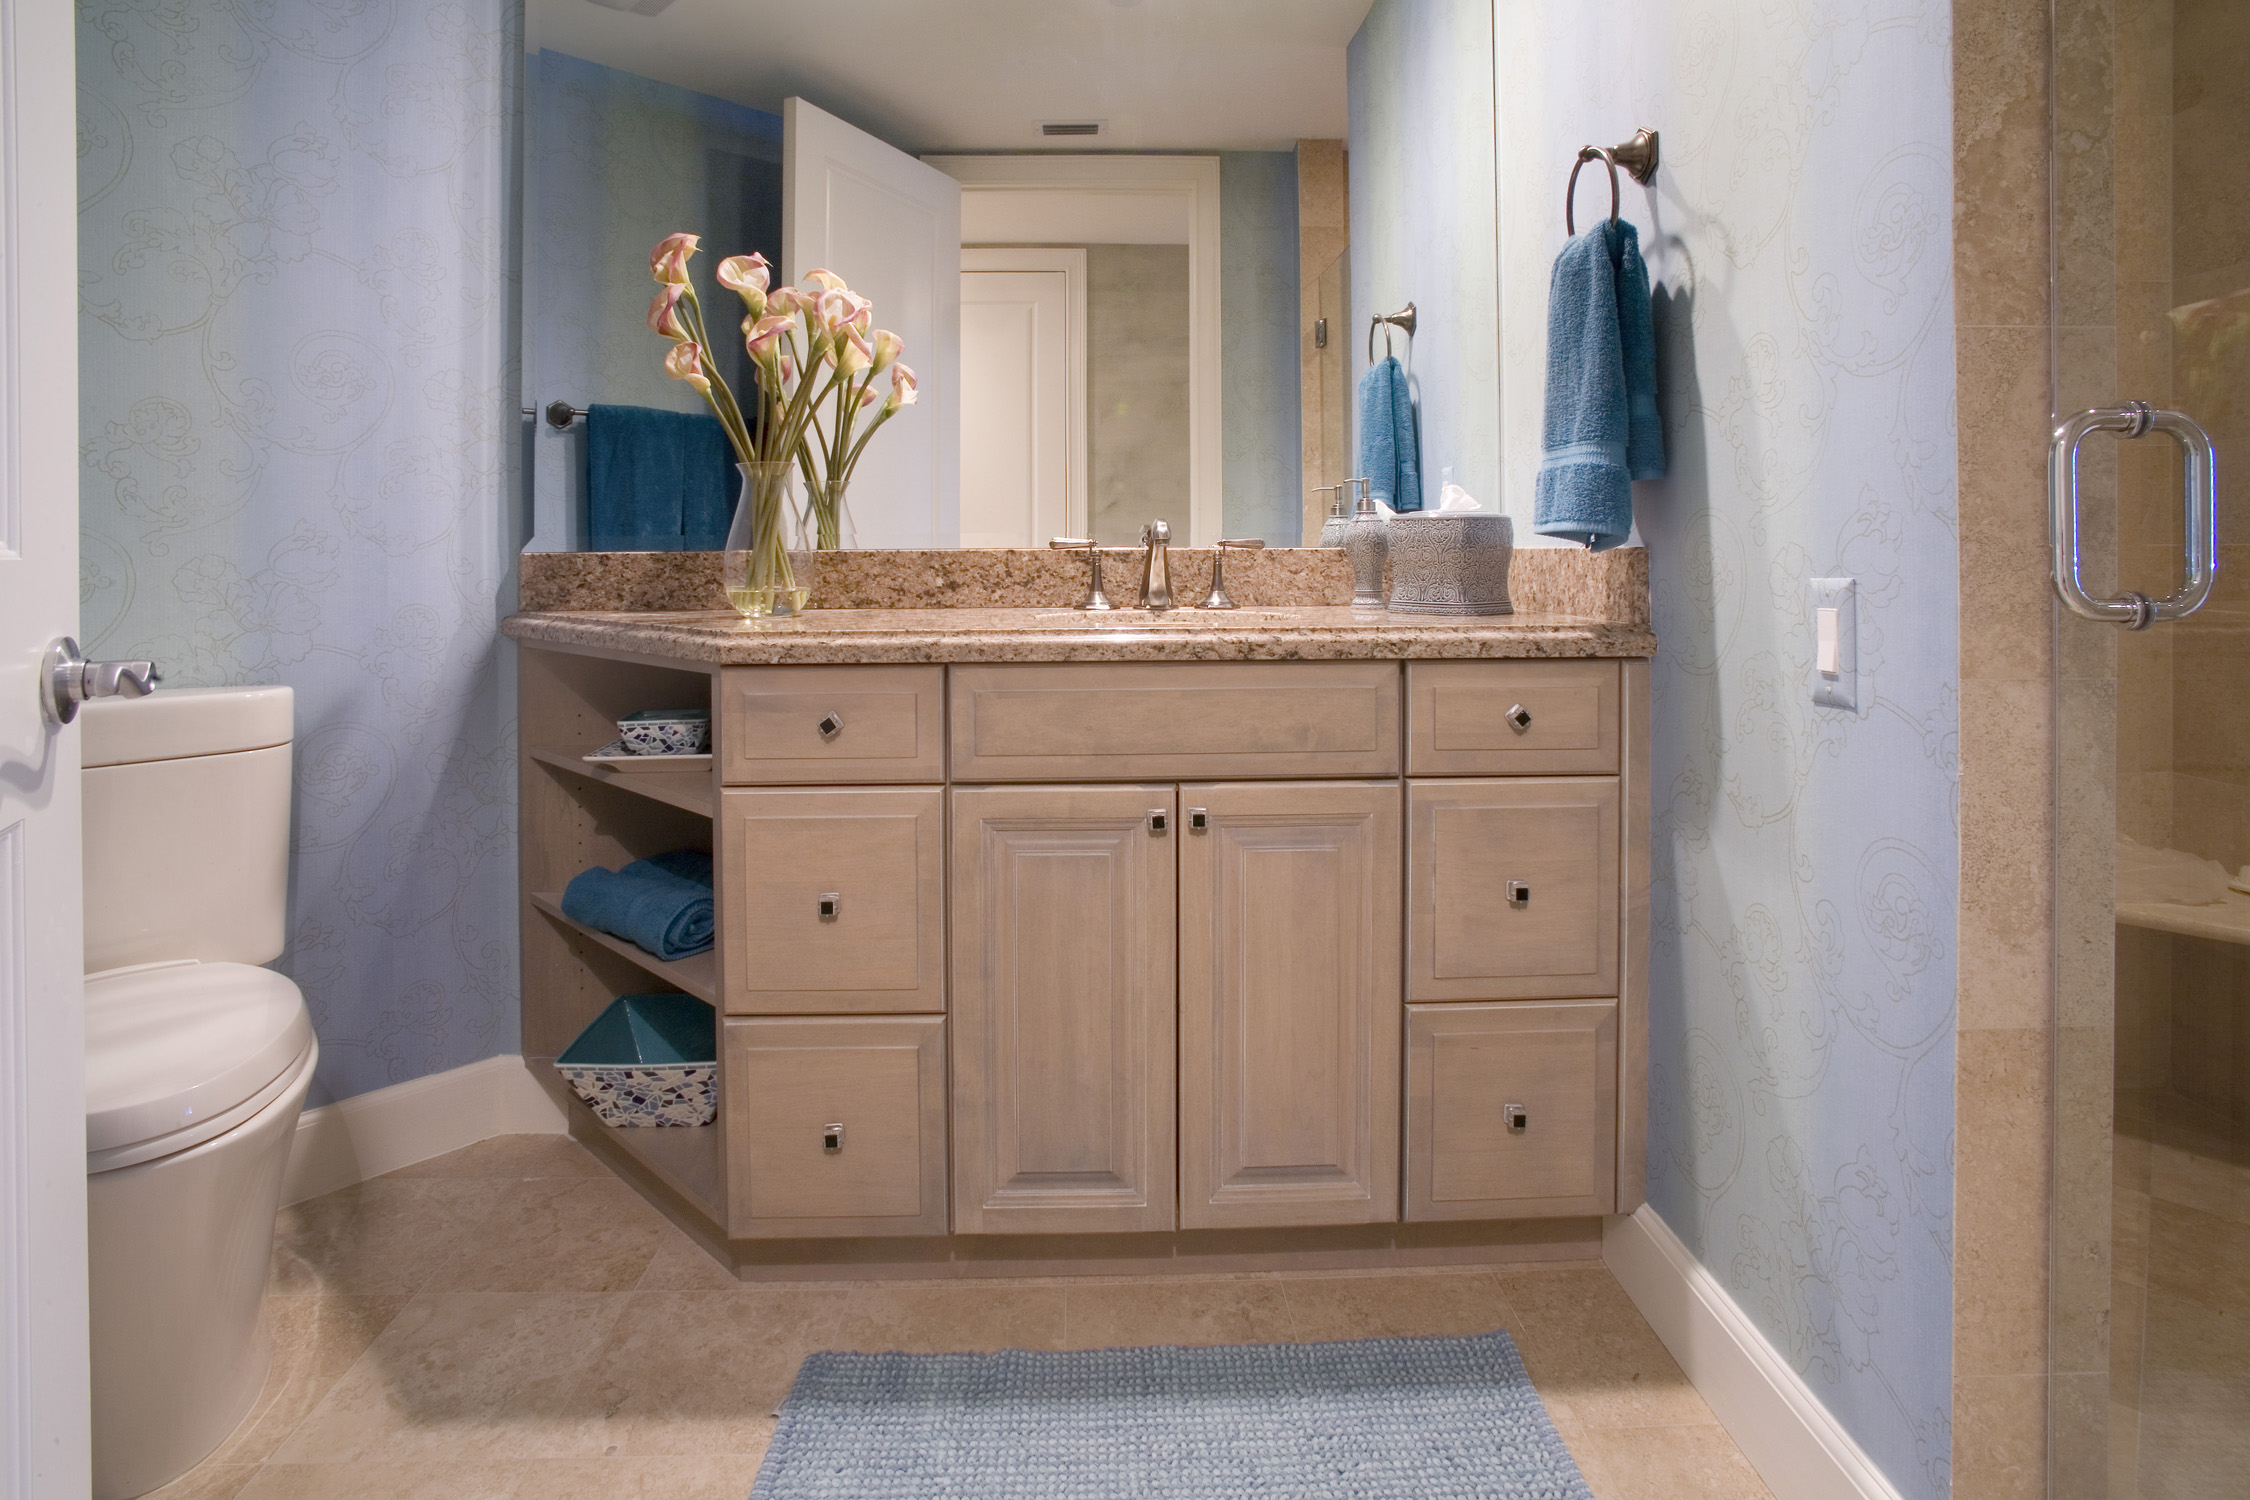 Kitchen And Bath Design Jobs Pittsburgh Inspirational